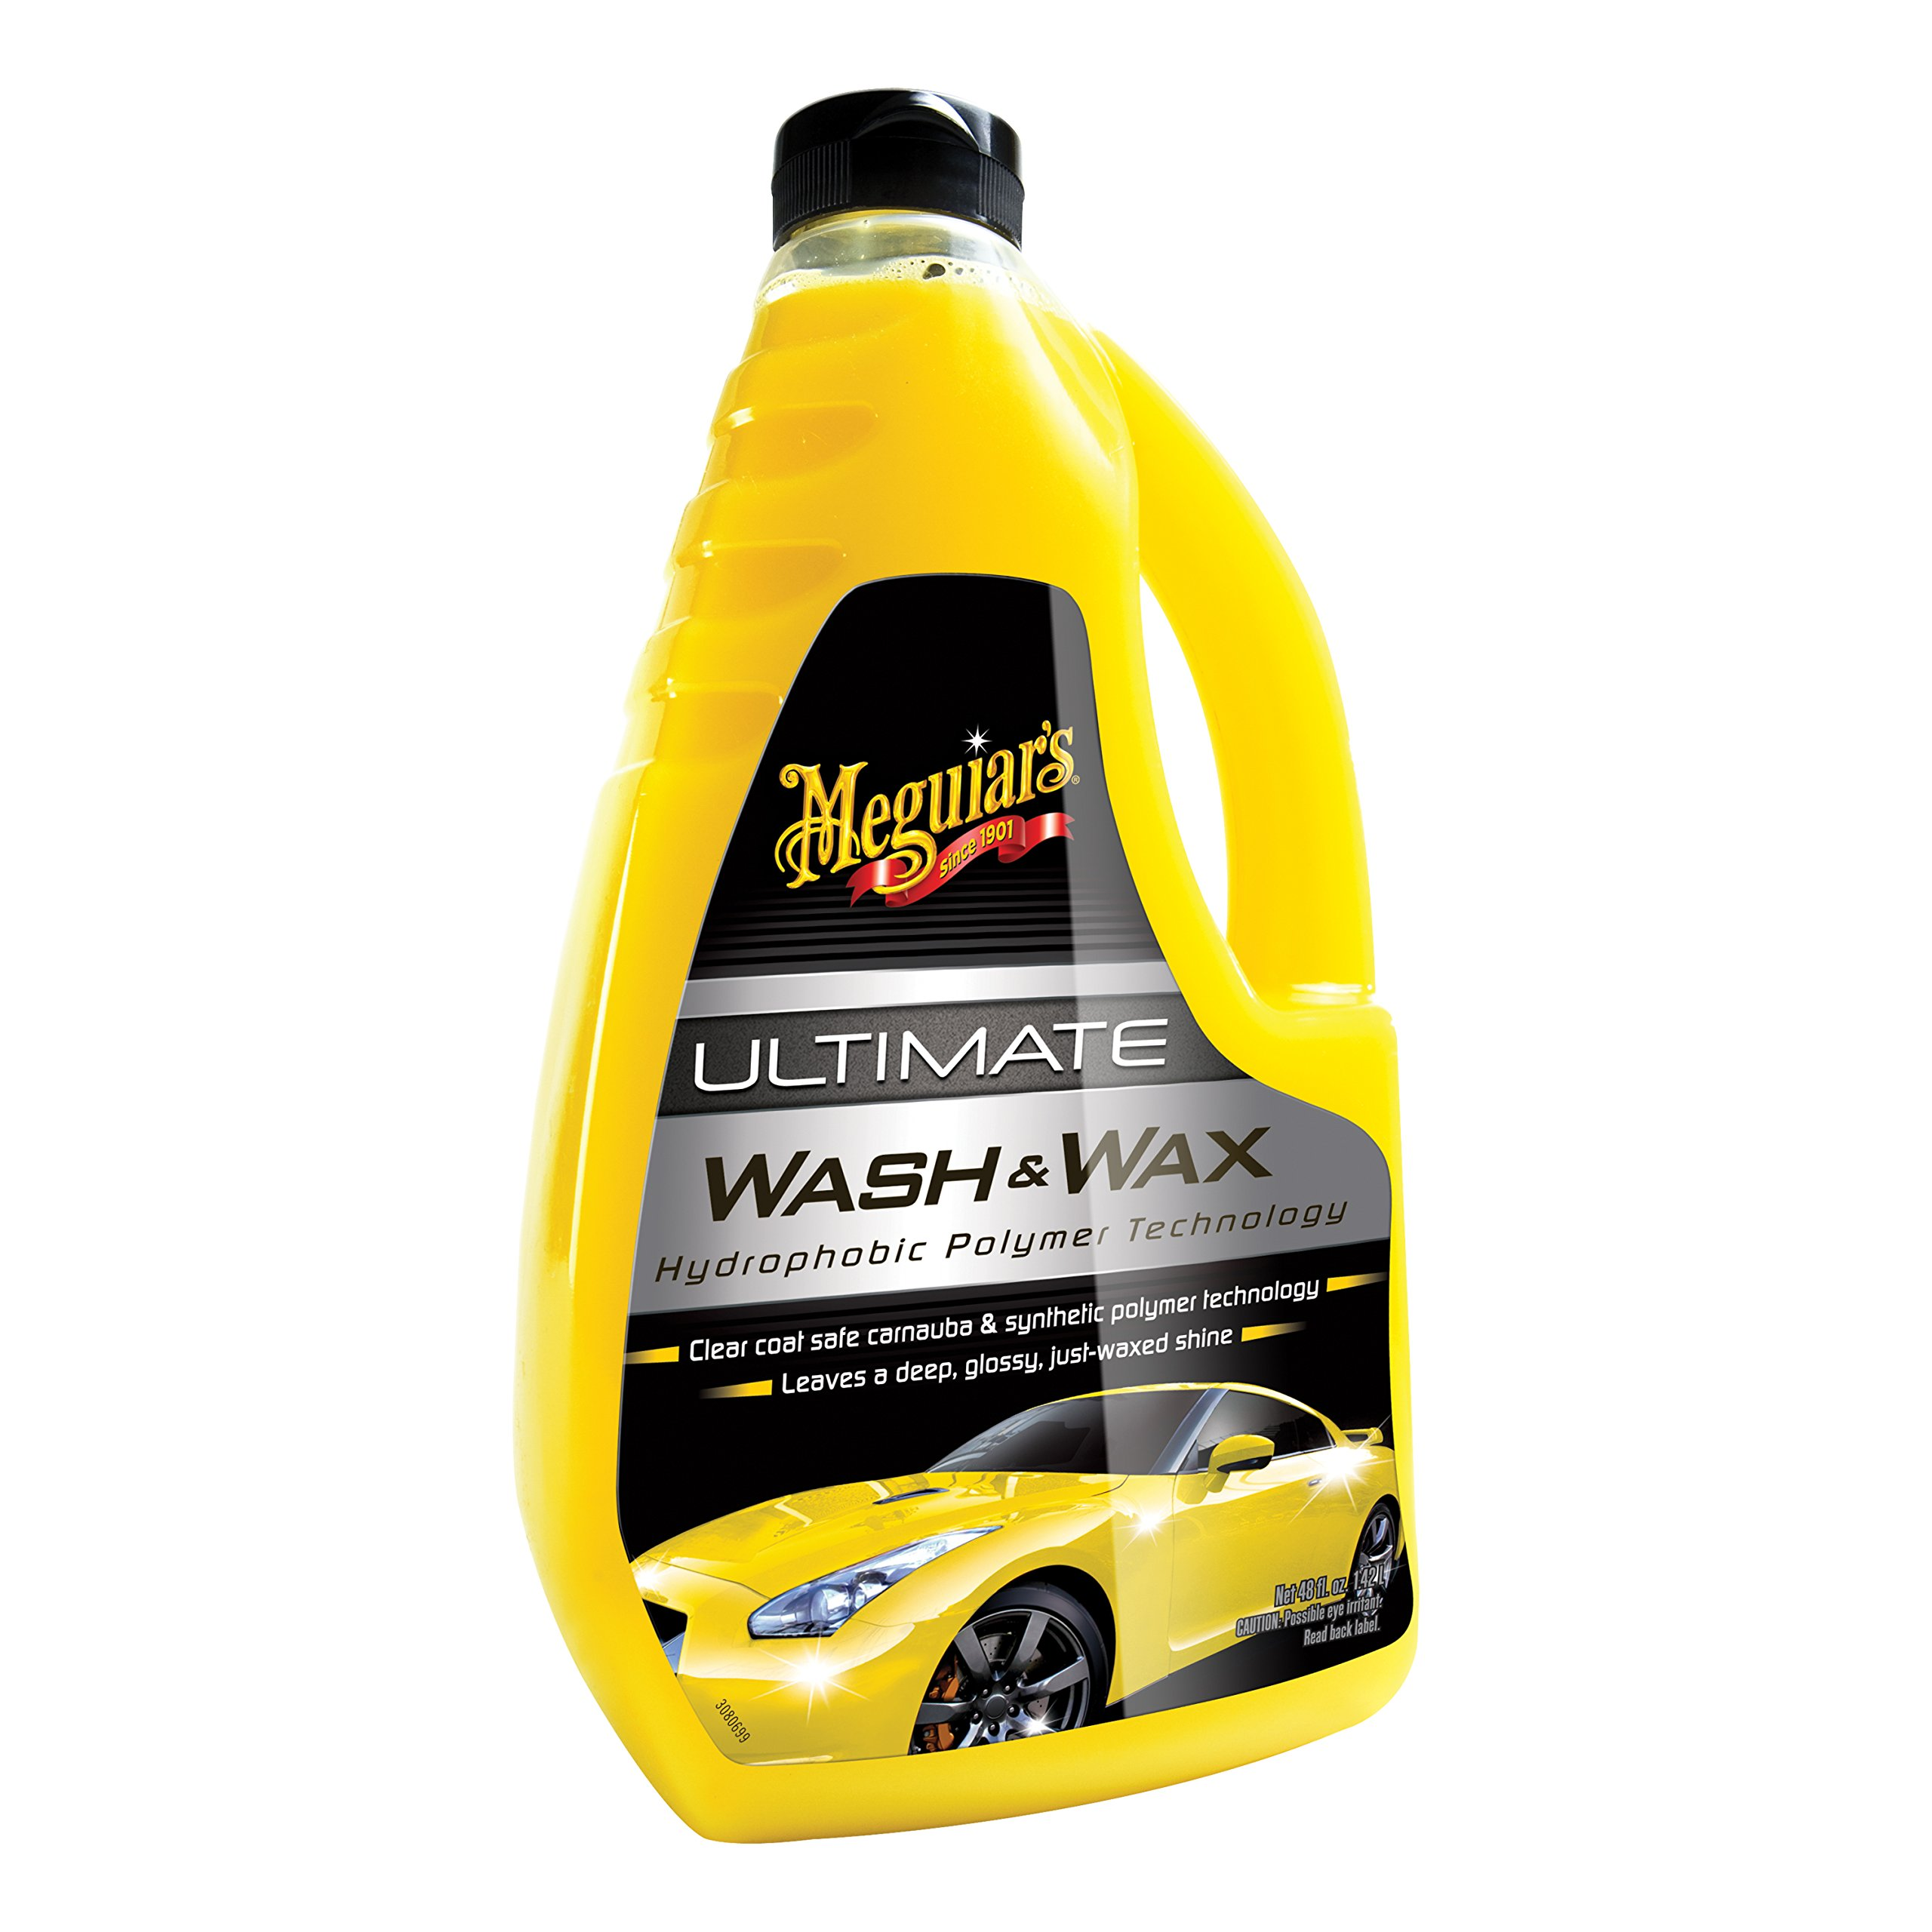 meguiars-g17748-ultimate-wash-wax-48-oz-best-rated-pressure-washer-detergent-soap-cars